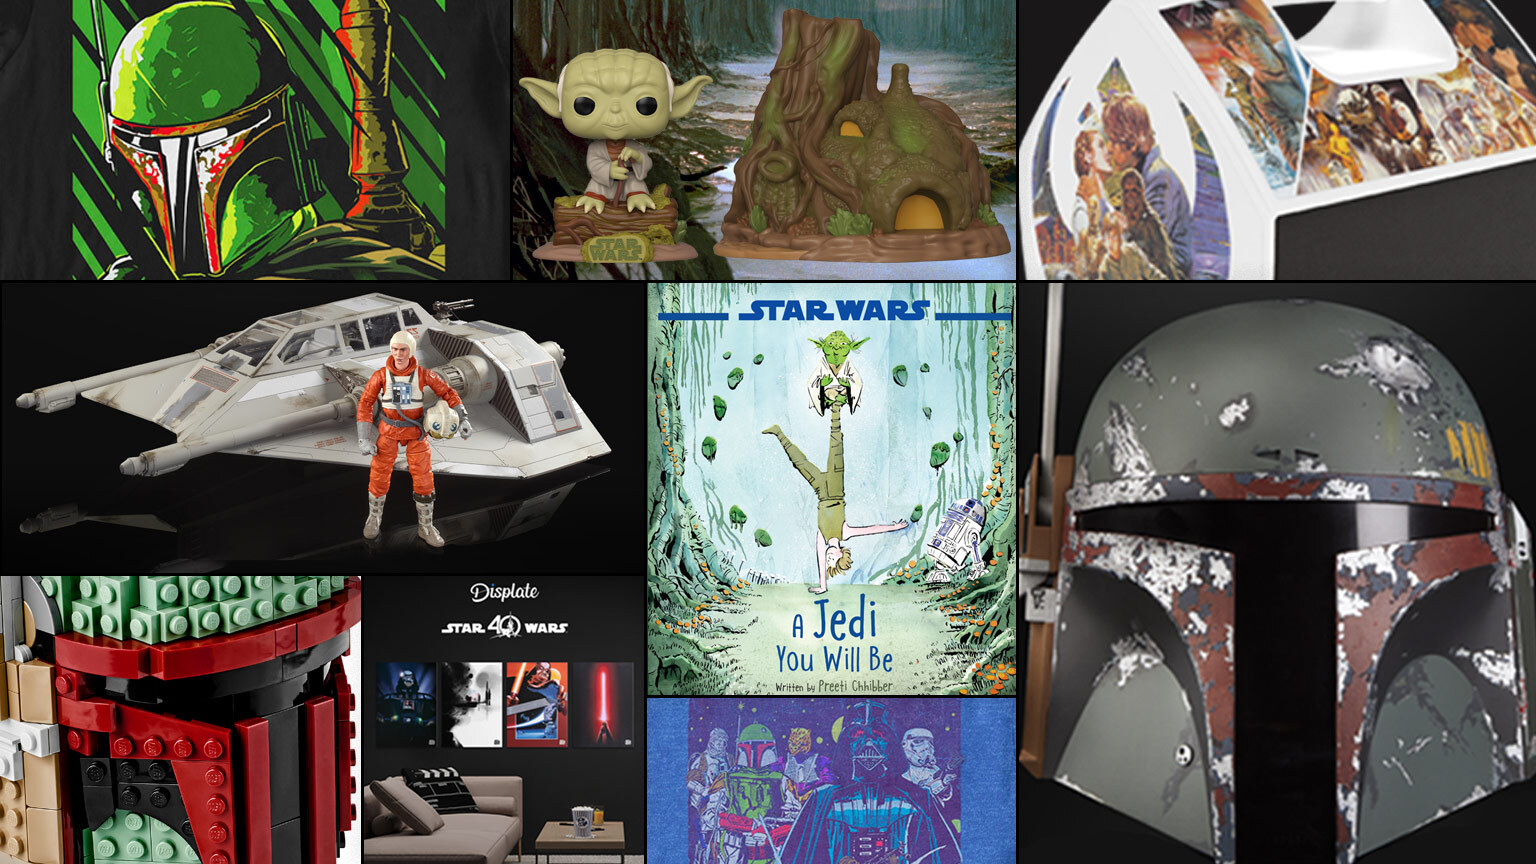 Collage of Star Wars: The Empire Strikes Back toys, books, and shirts